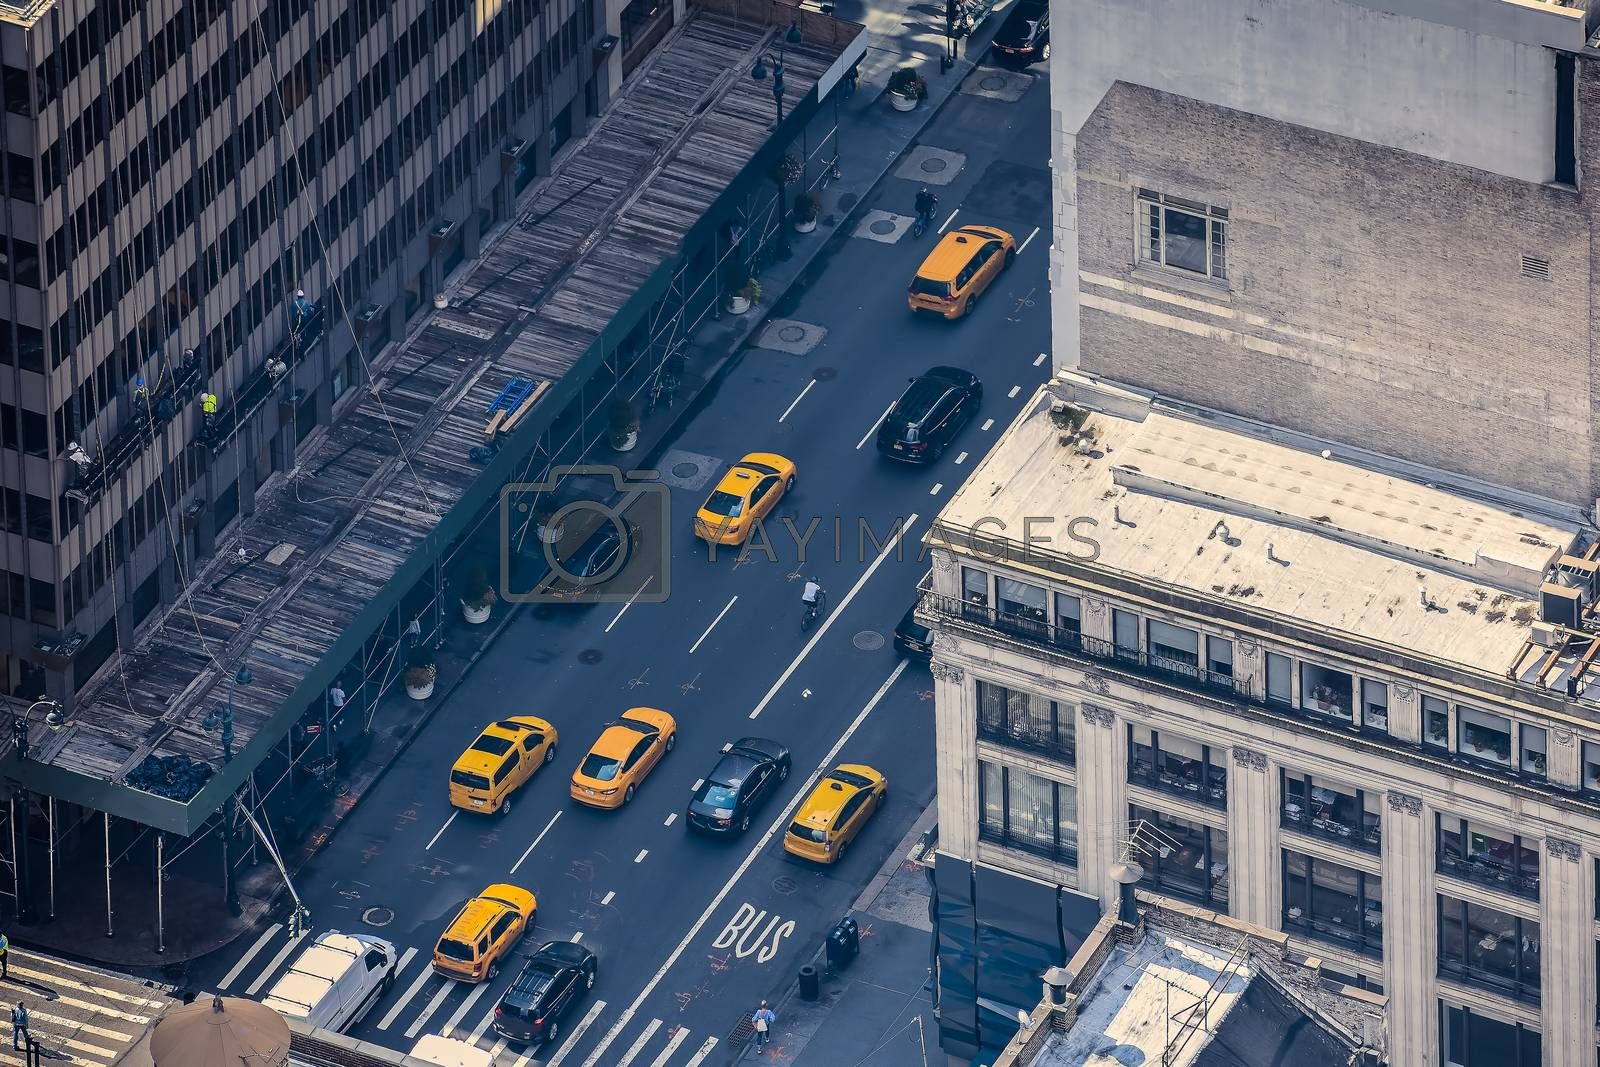 Airstrip of New York City, with buildings and streets filled with the famous yellow taxis during the day. Concept of travel and transport. NYC, USA.